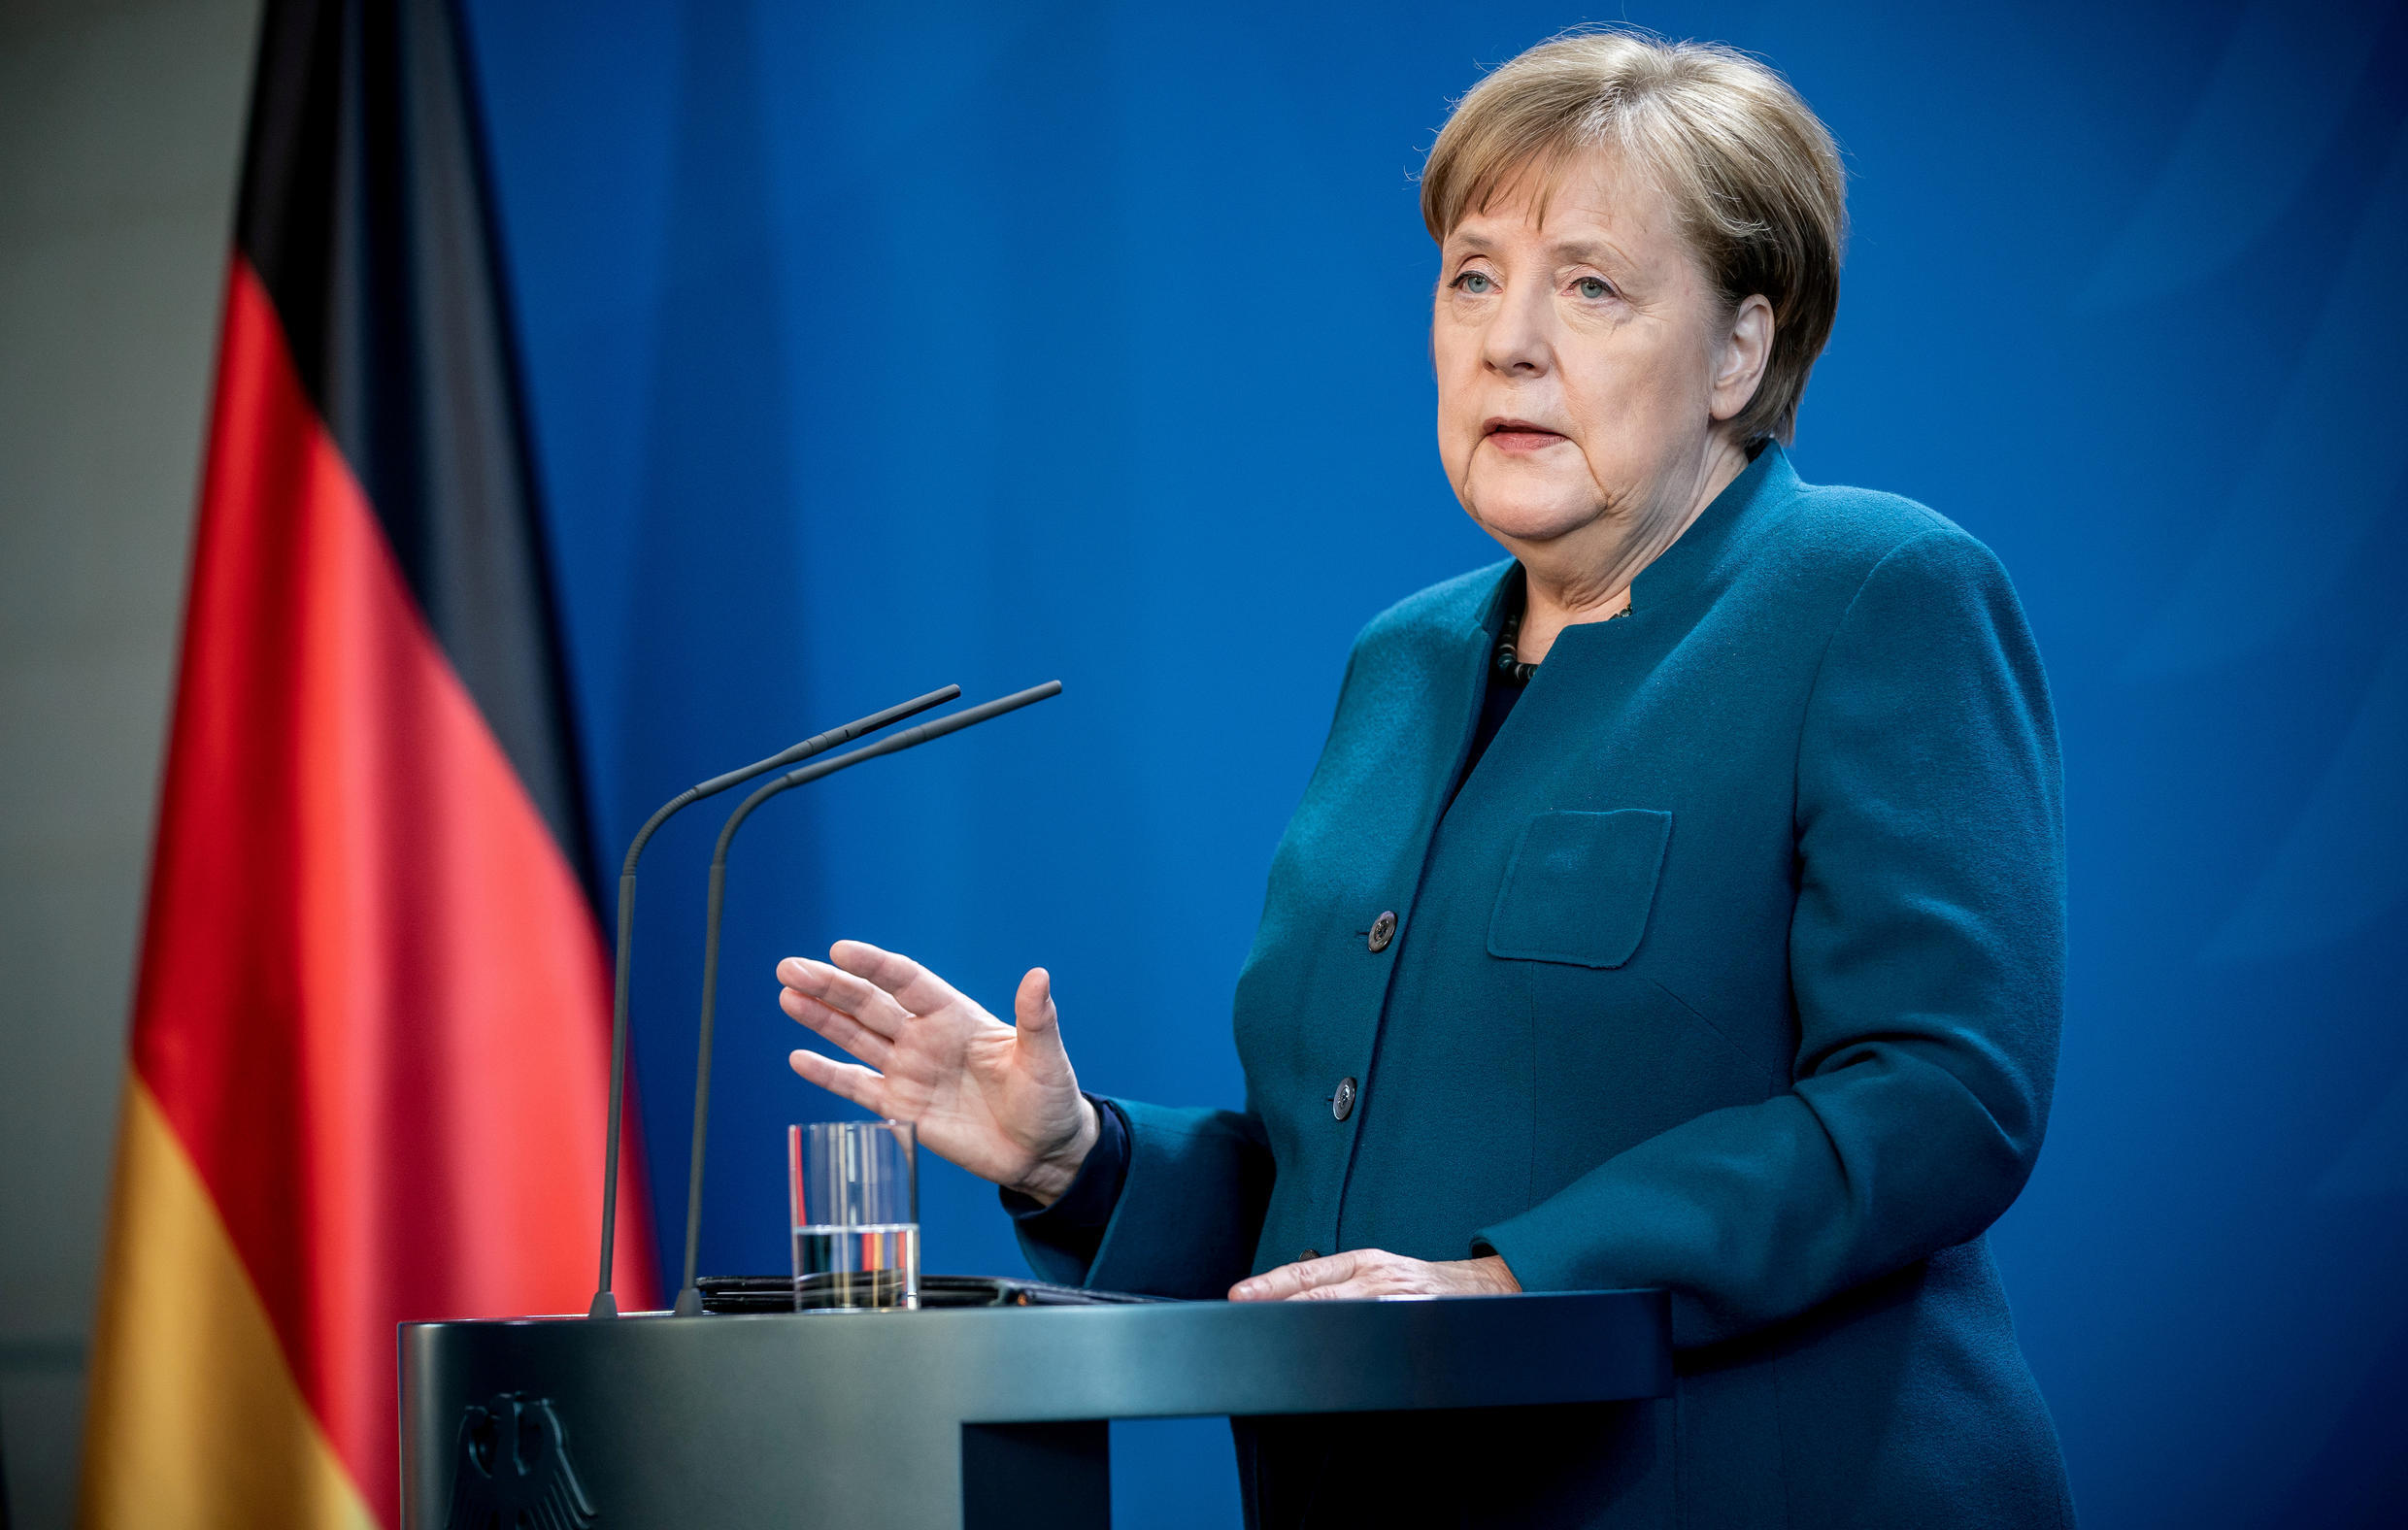 German Chancellor Angela Merkel gives a media statement on the spread of the new coronavirus (COVID-19) at the Chancellery in Berlin, Germany, March 22, 2020.